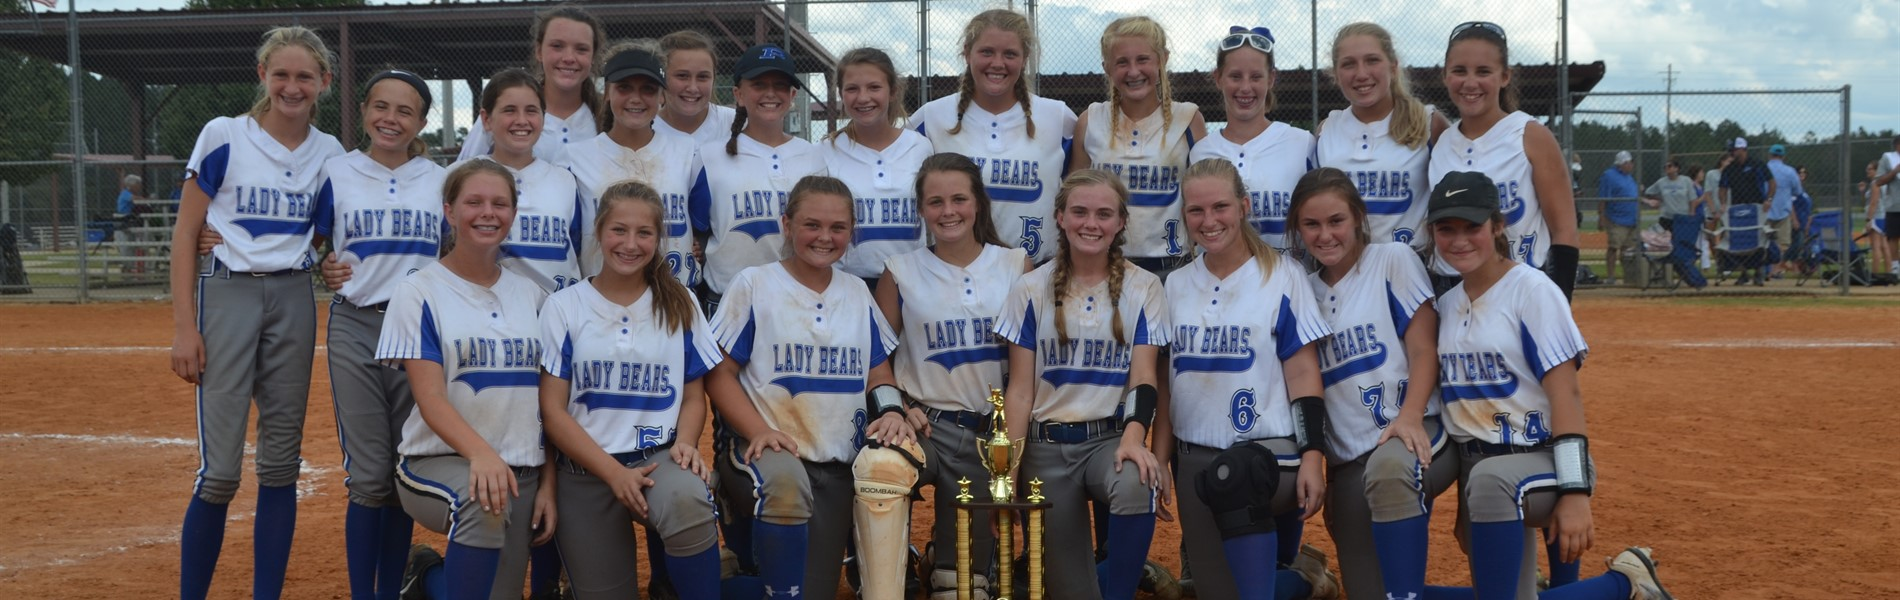 2018-2019 Softball Conference CHAMPS!